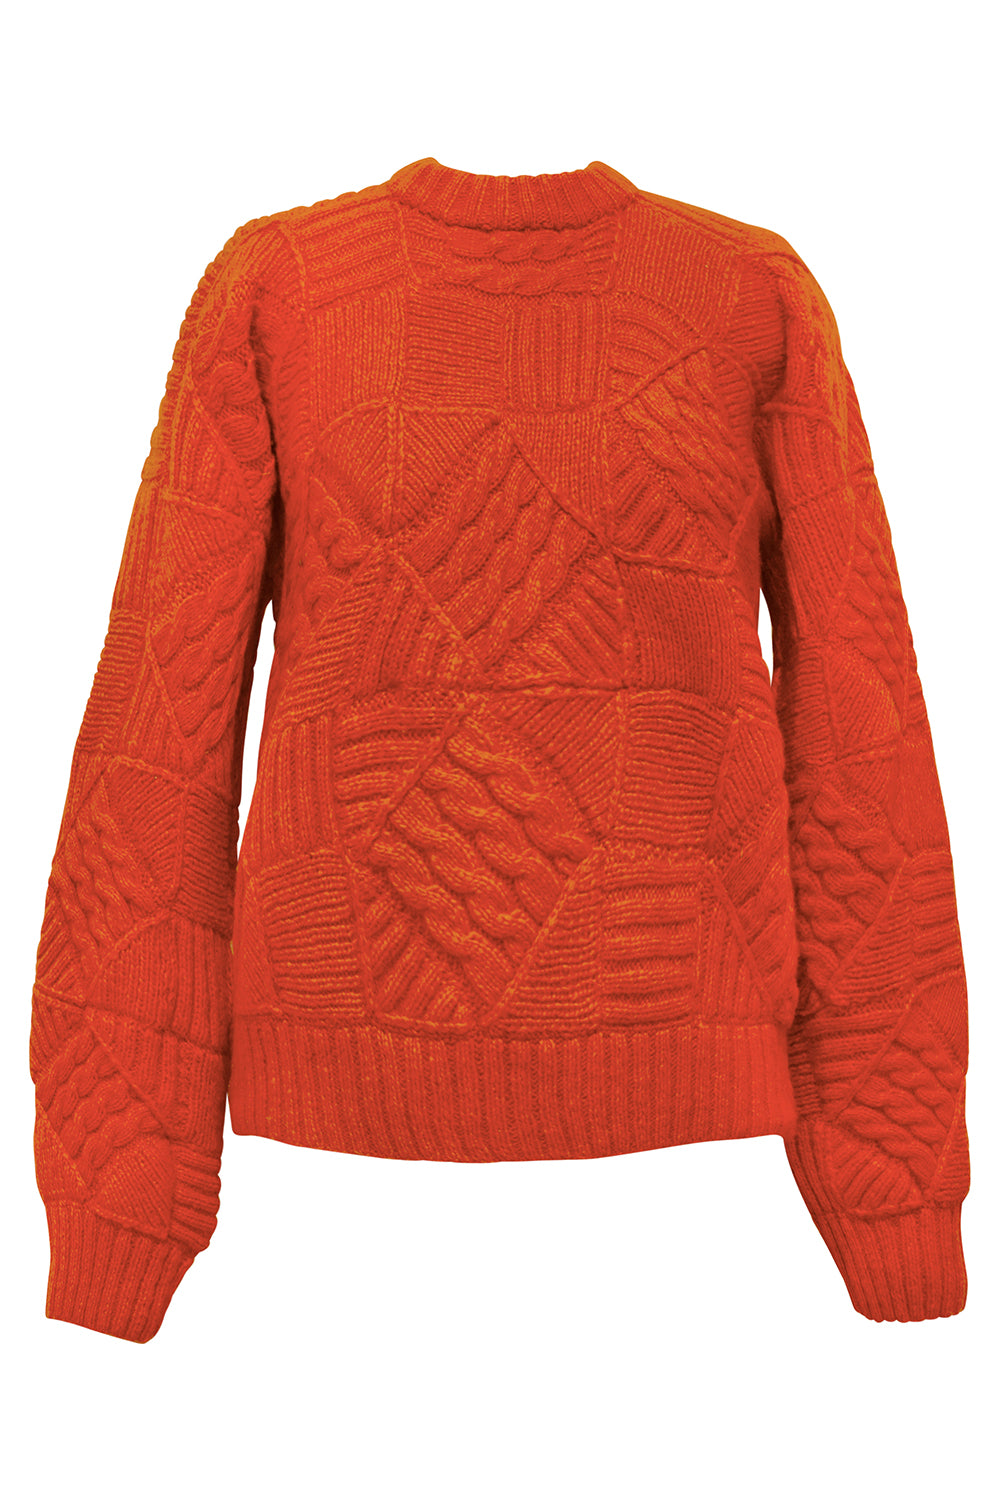 Jose Knit His & Hers Patchwork Sweater in Orange